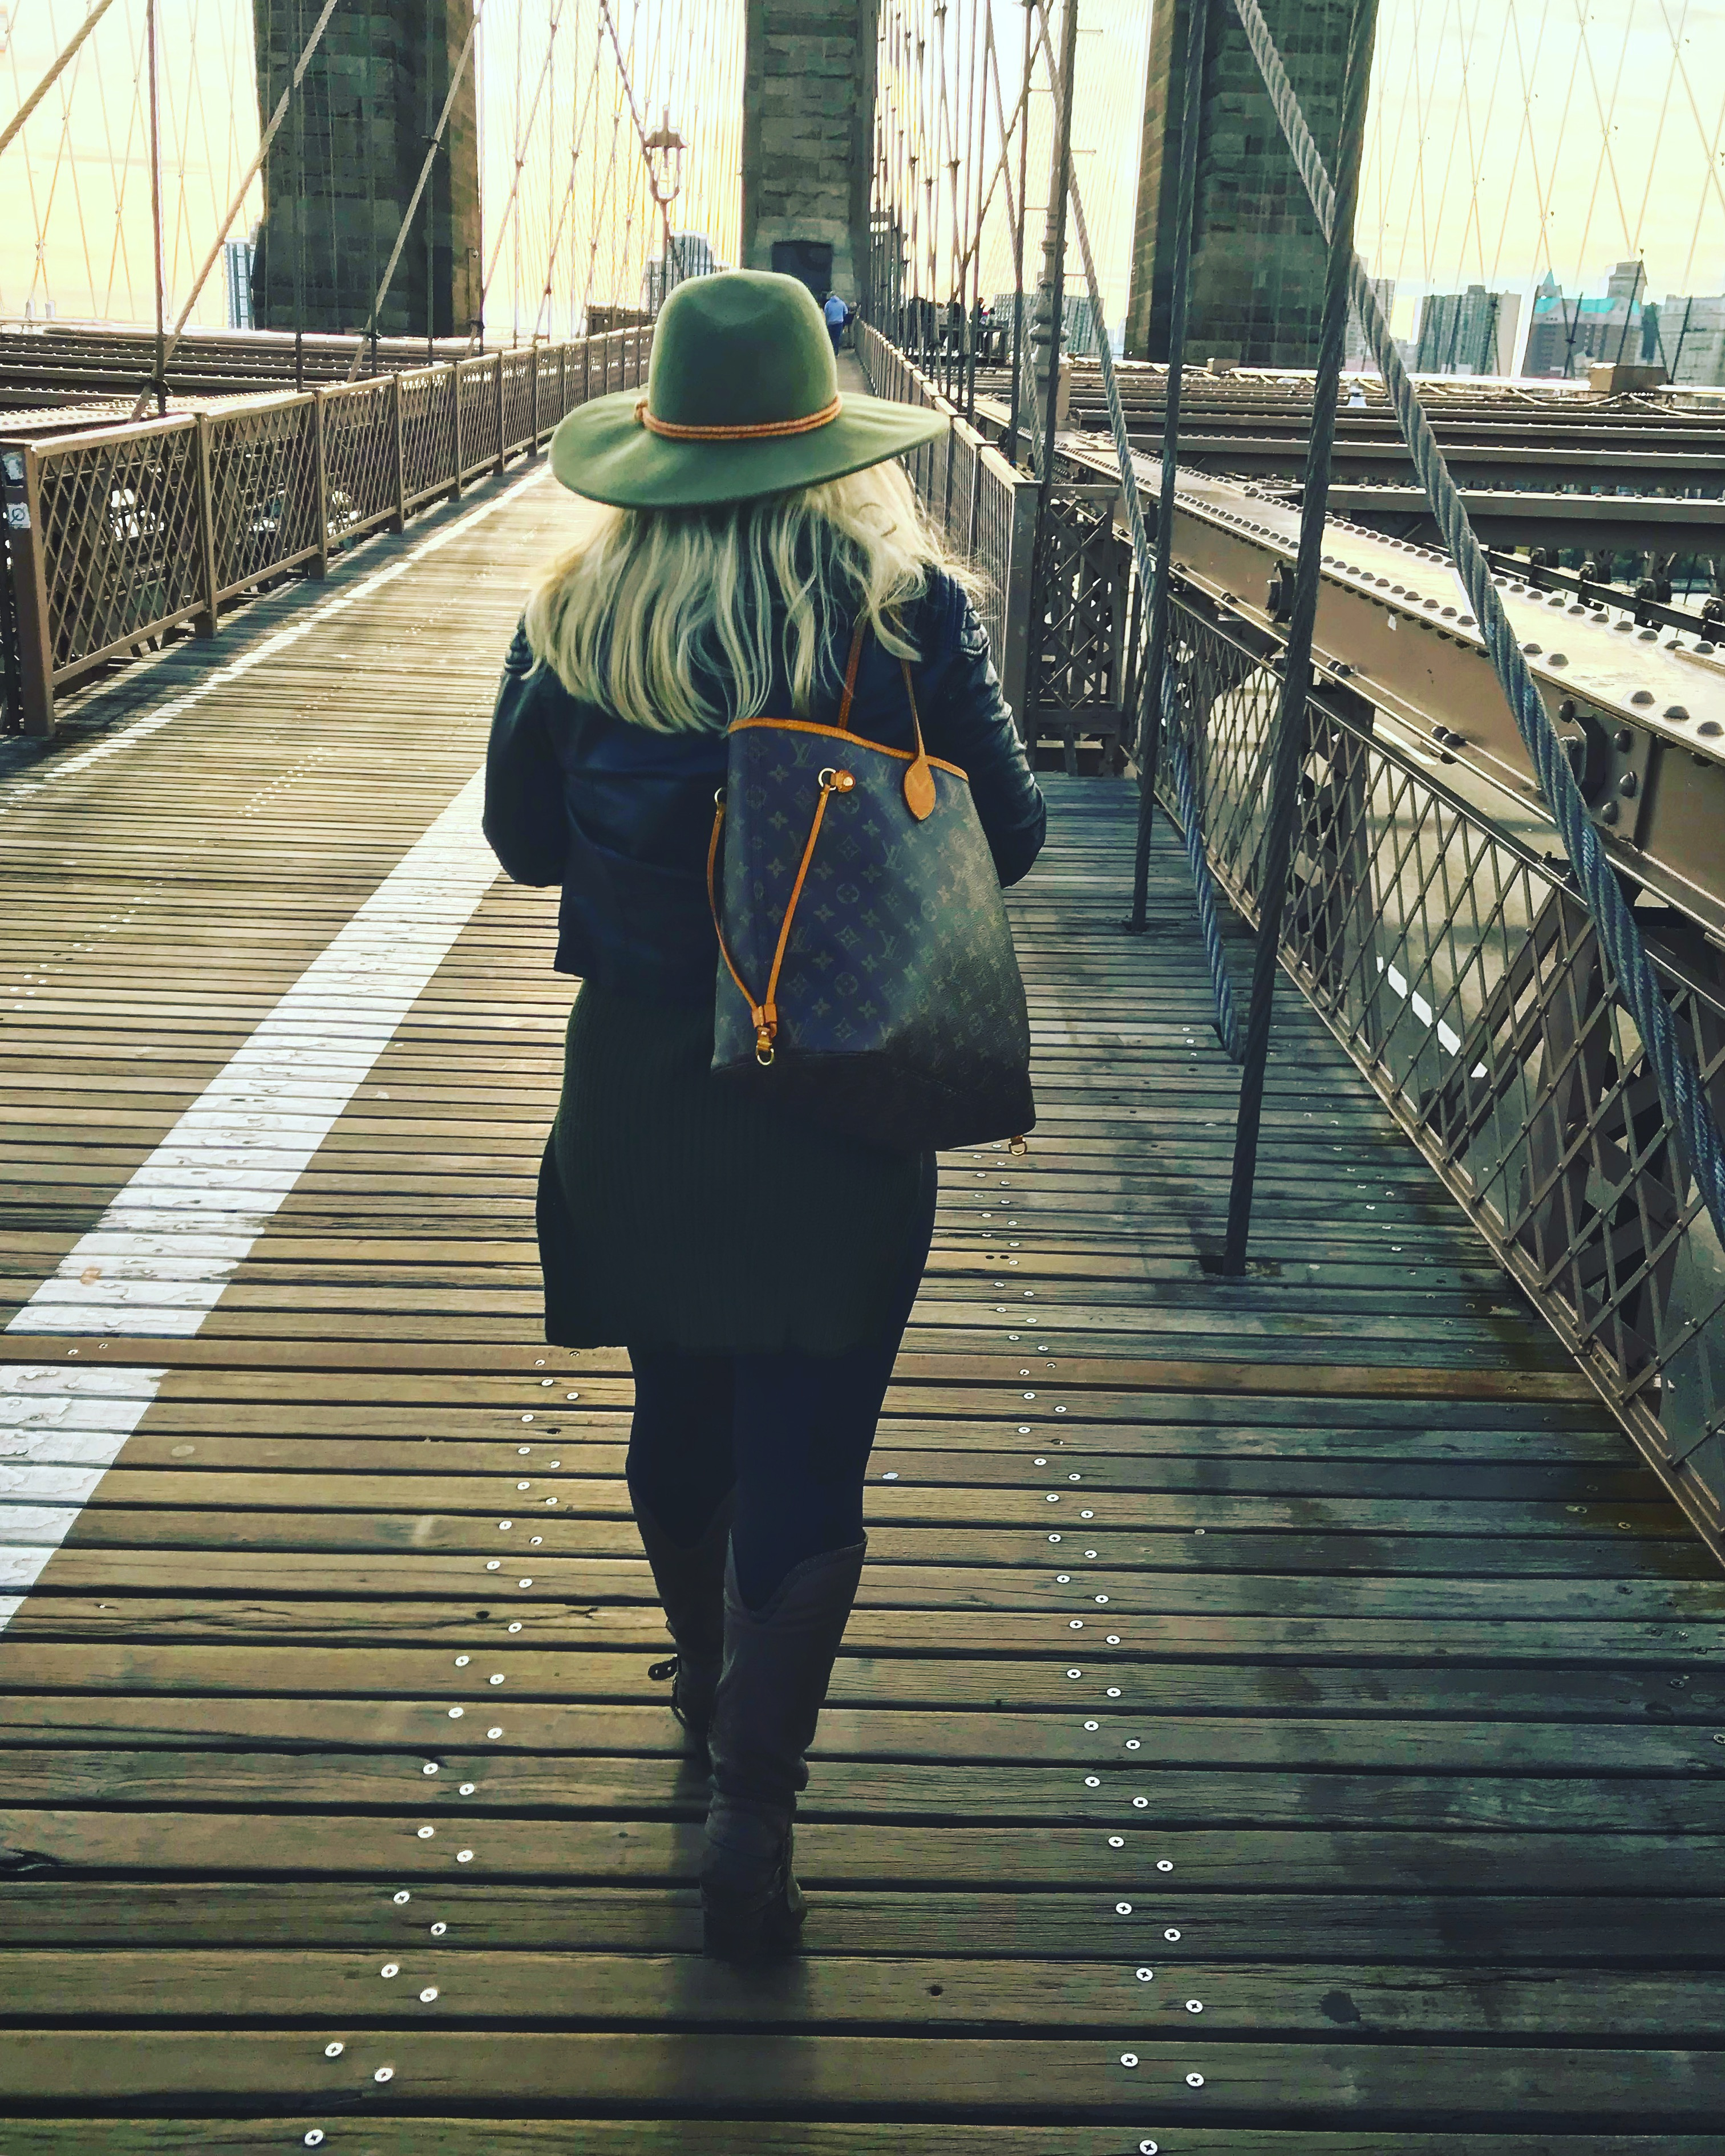 Wanderlusting: Bridging Brooklyn (and Central Park) Part Two